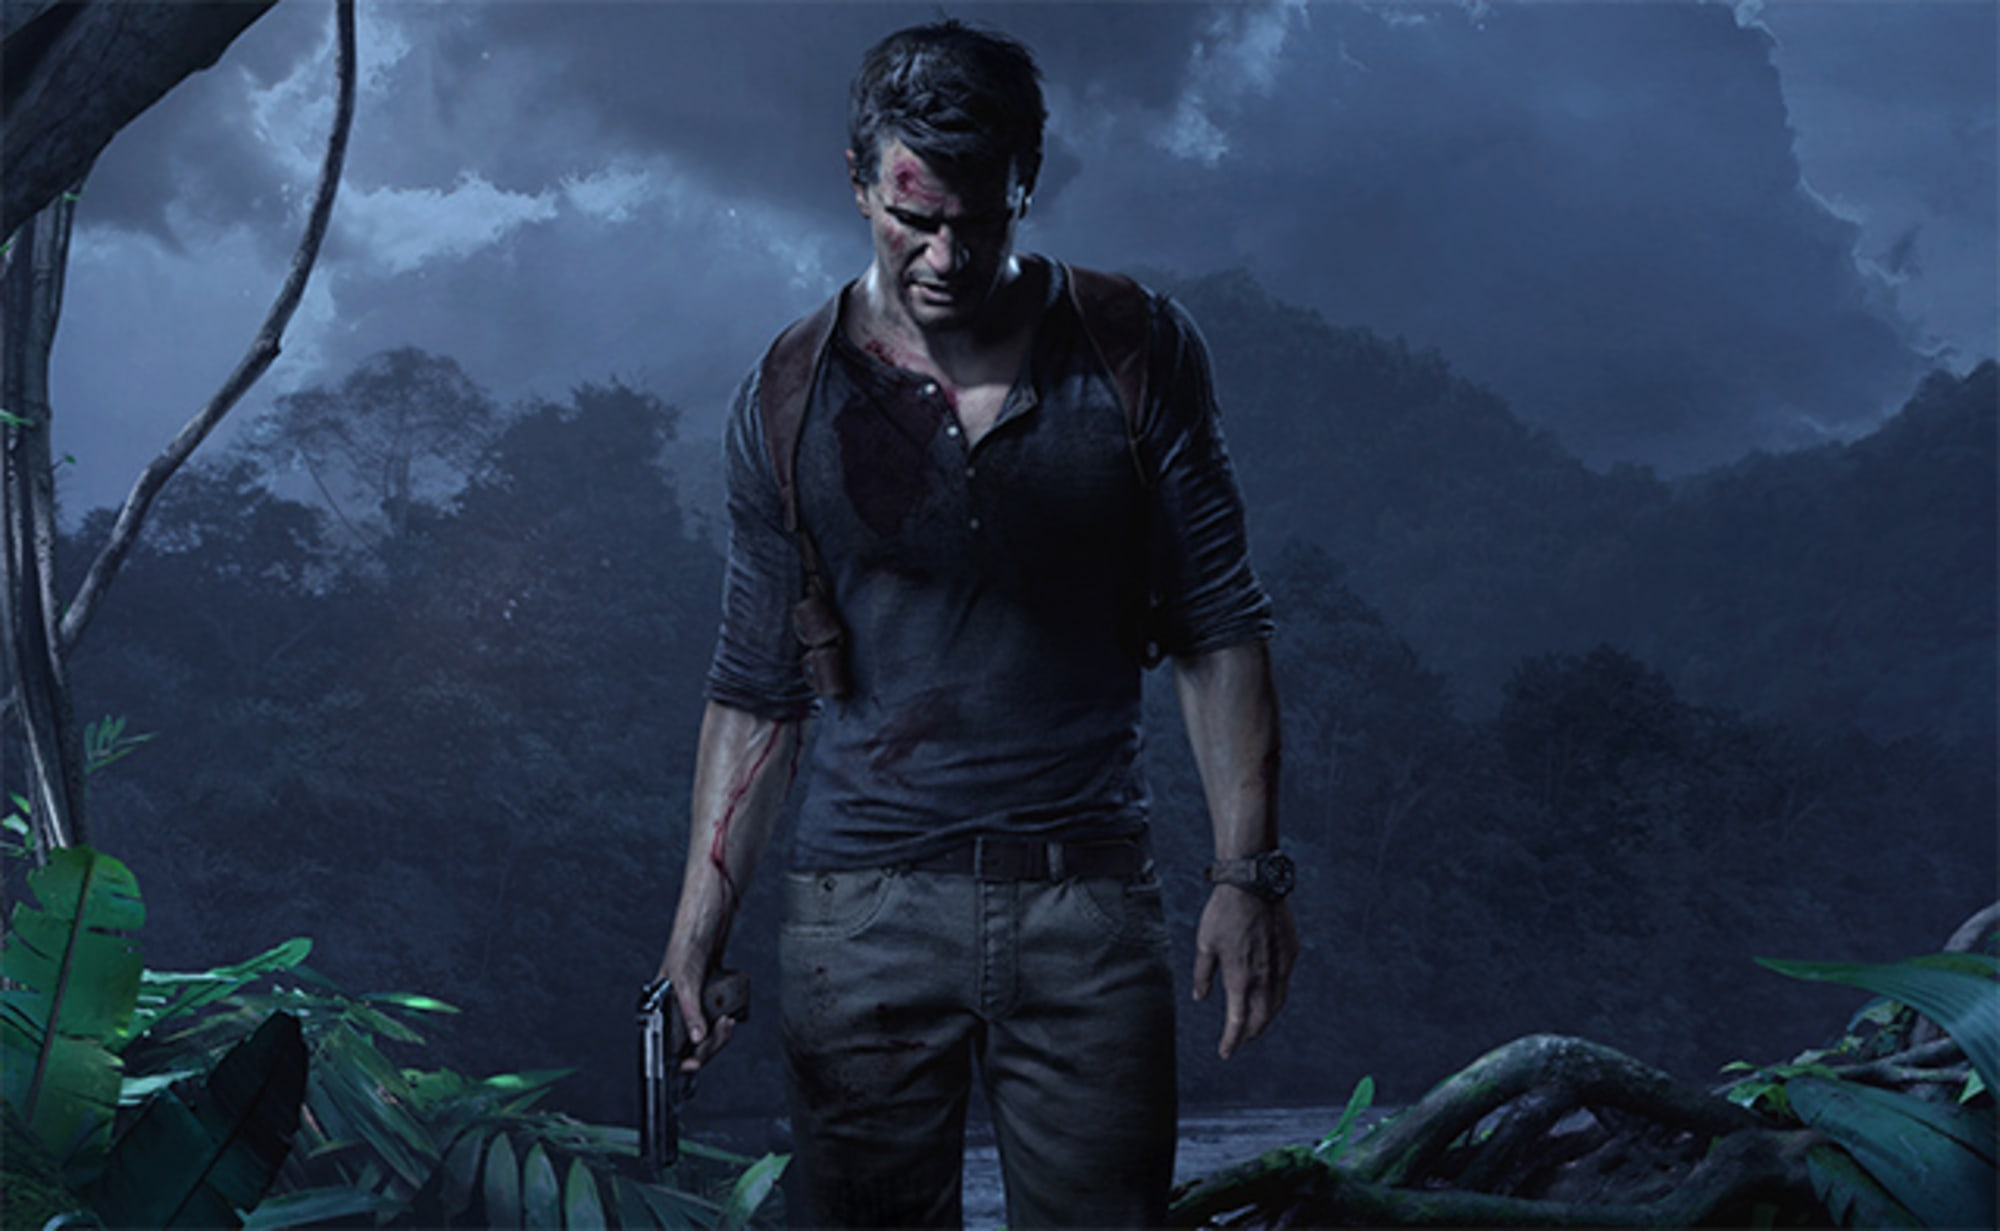 Uncharted 5 3 Ways Naughty Dog Can Keep It Going